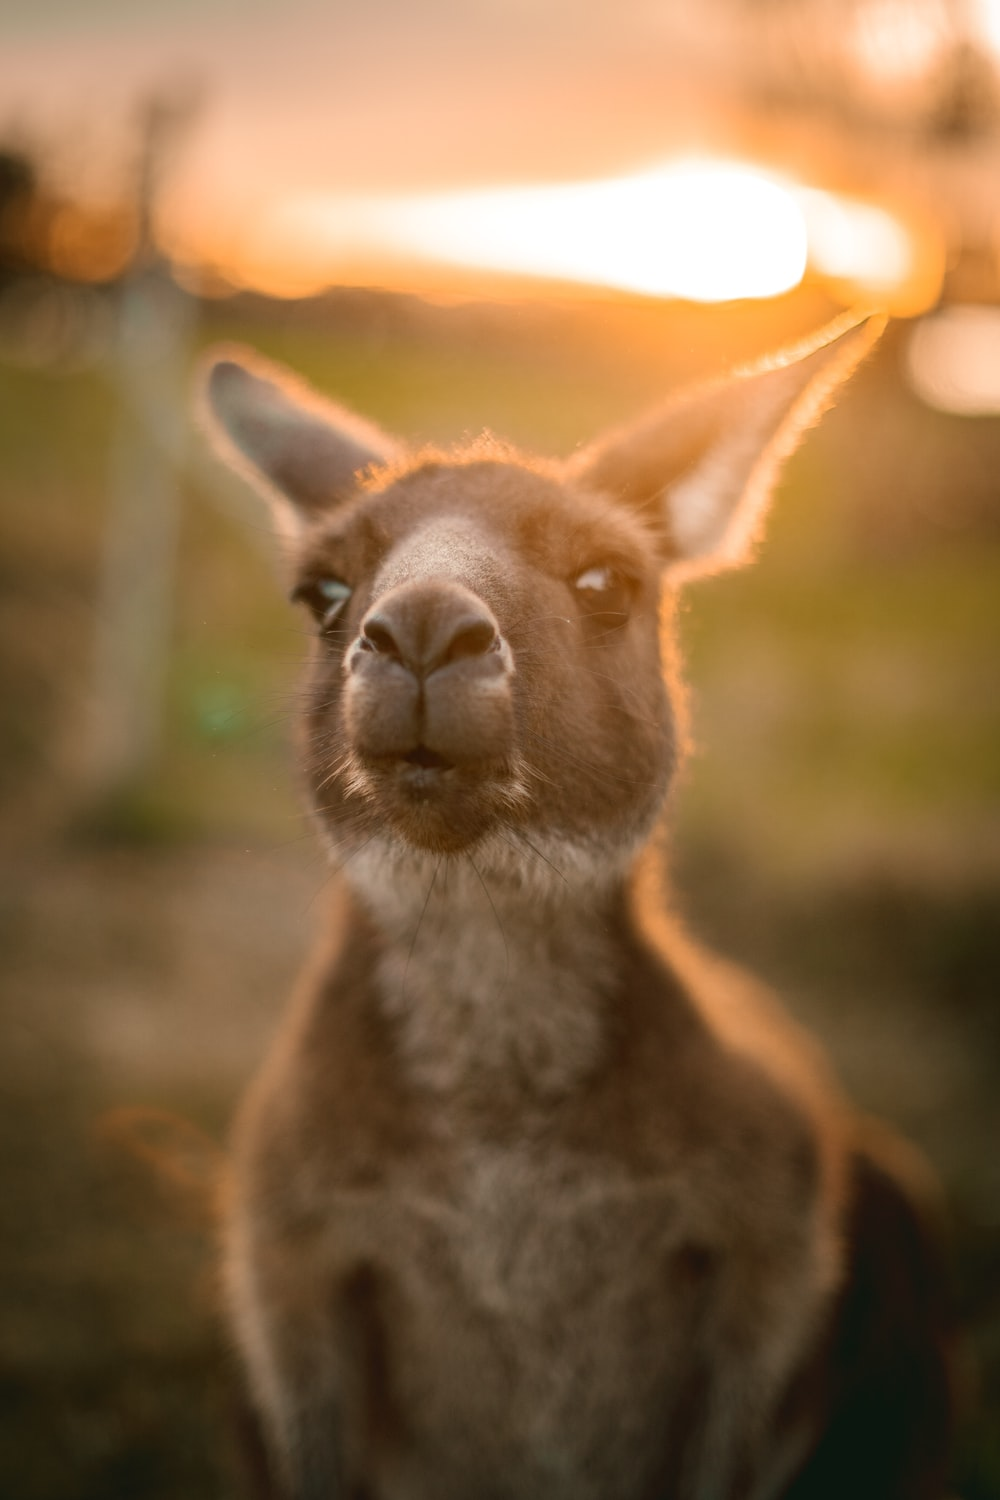 brown and white kangaroo in close up photography during daytime